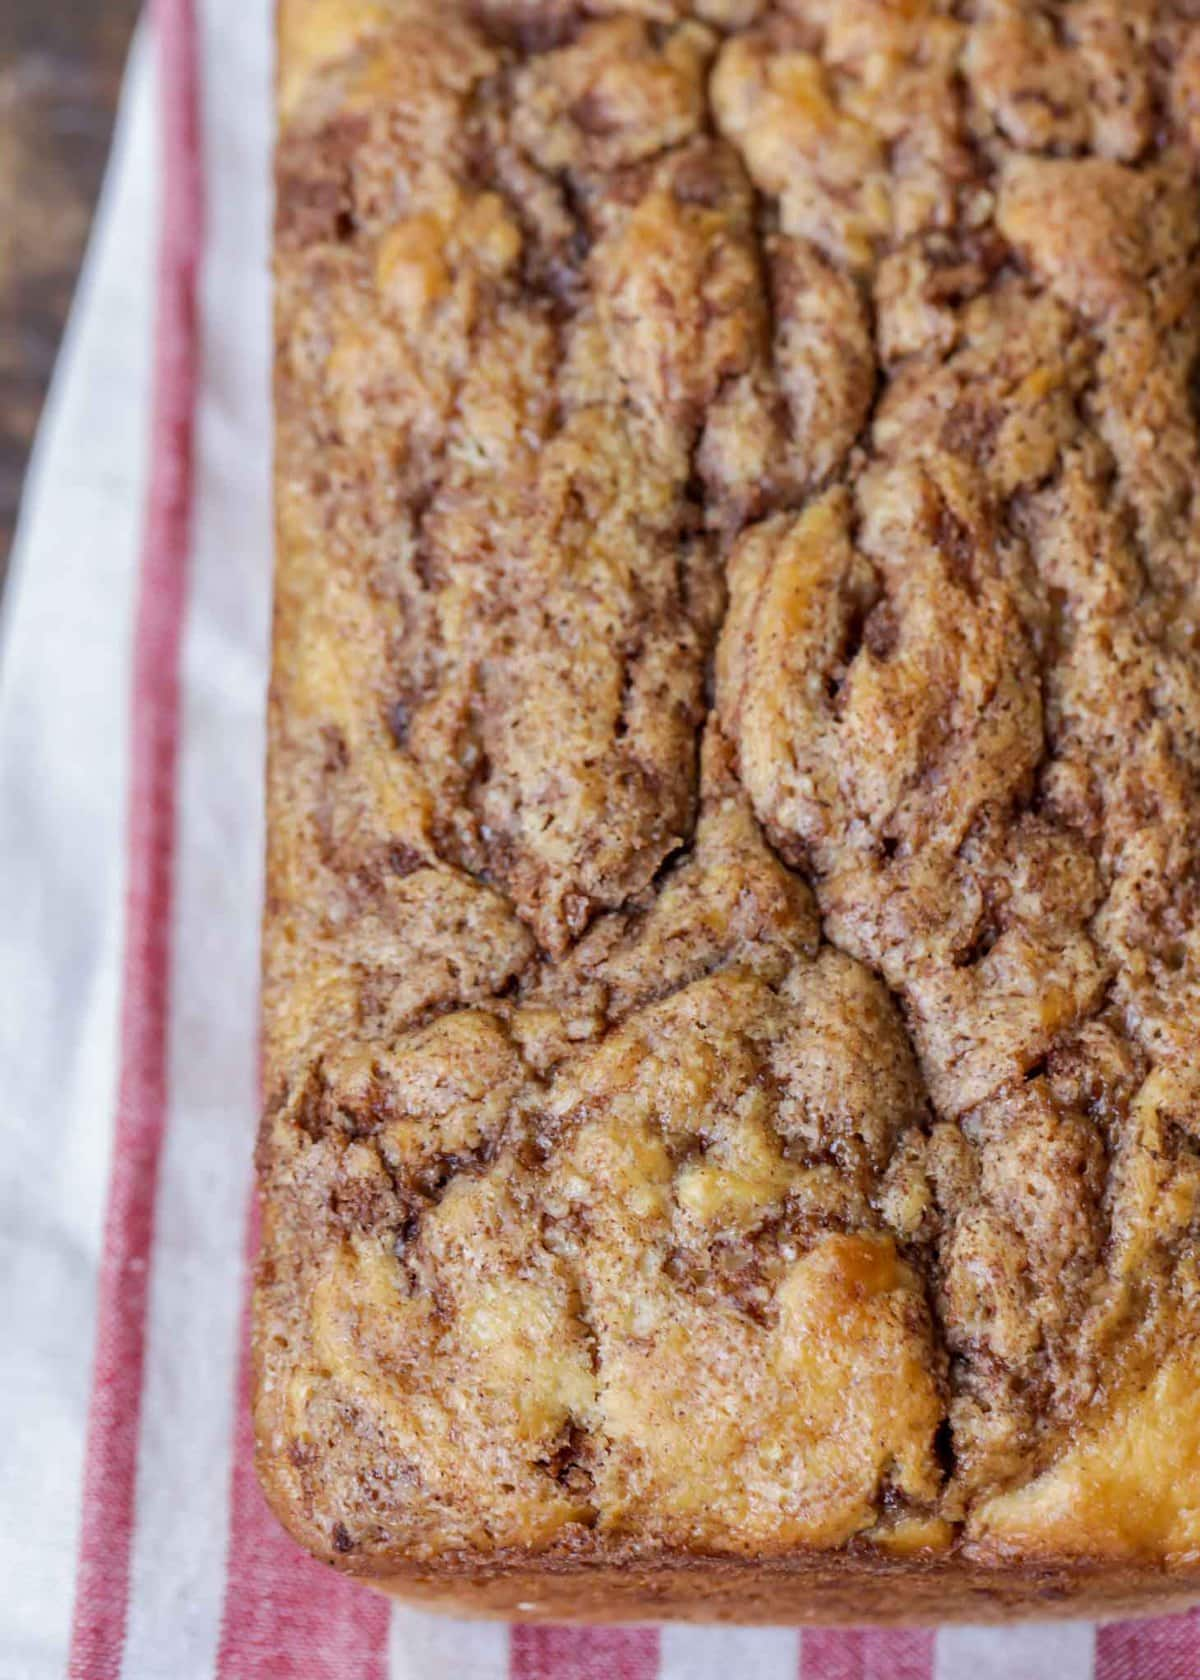 Loaf of cinnamon swirl bread unglazed and whole